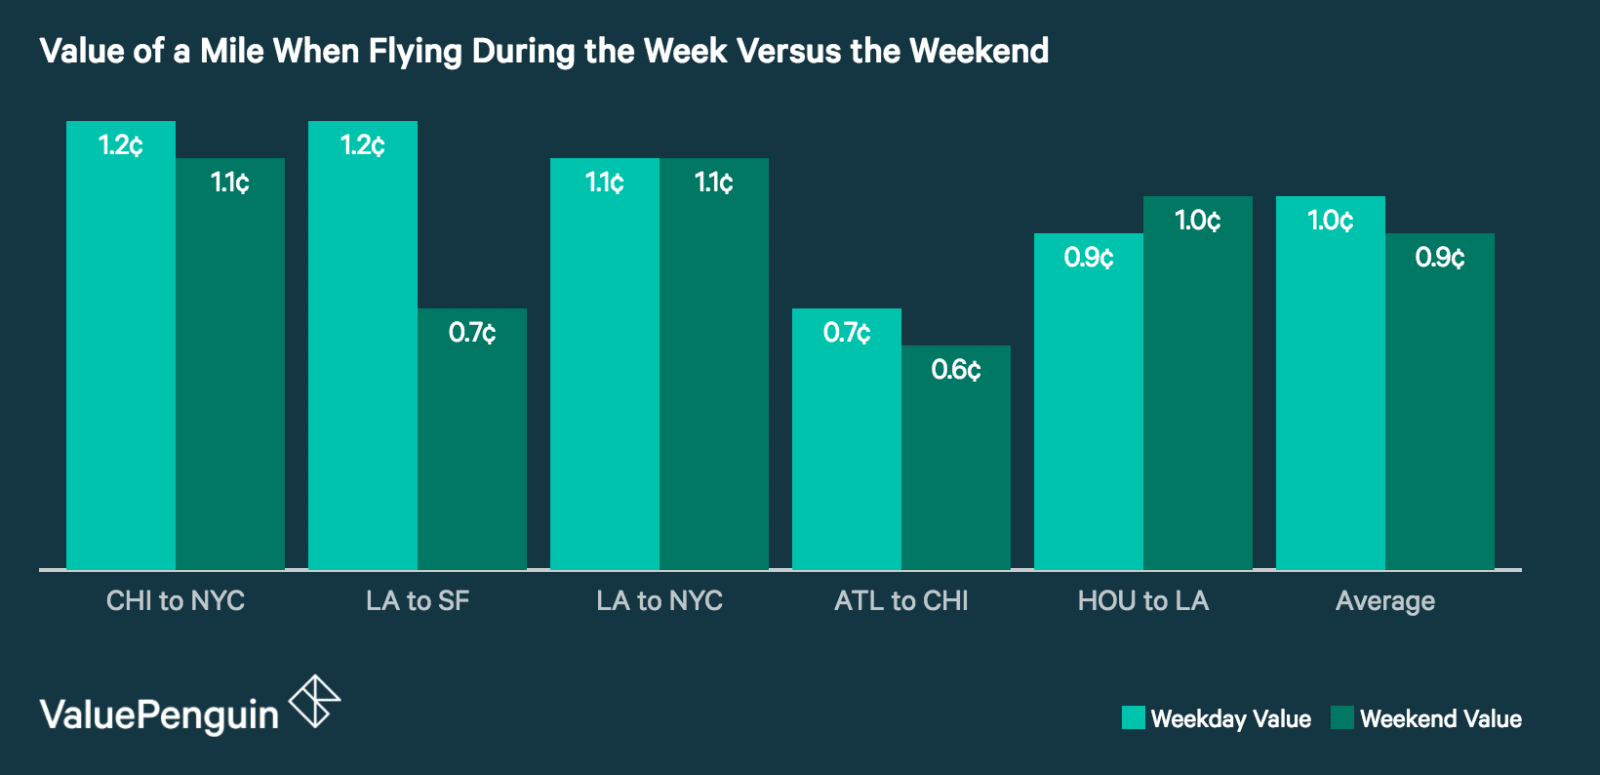 Value of Miles When Flying During Week Versus Weekend